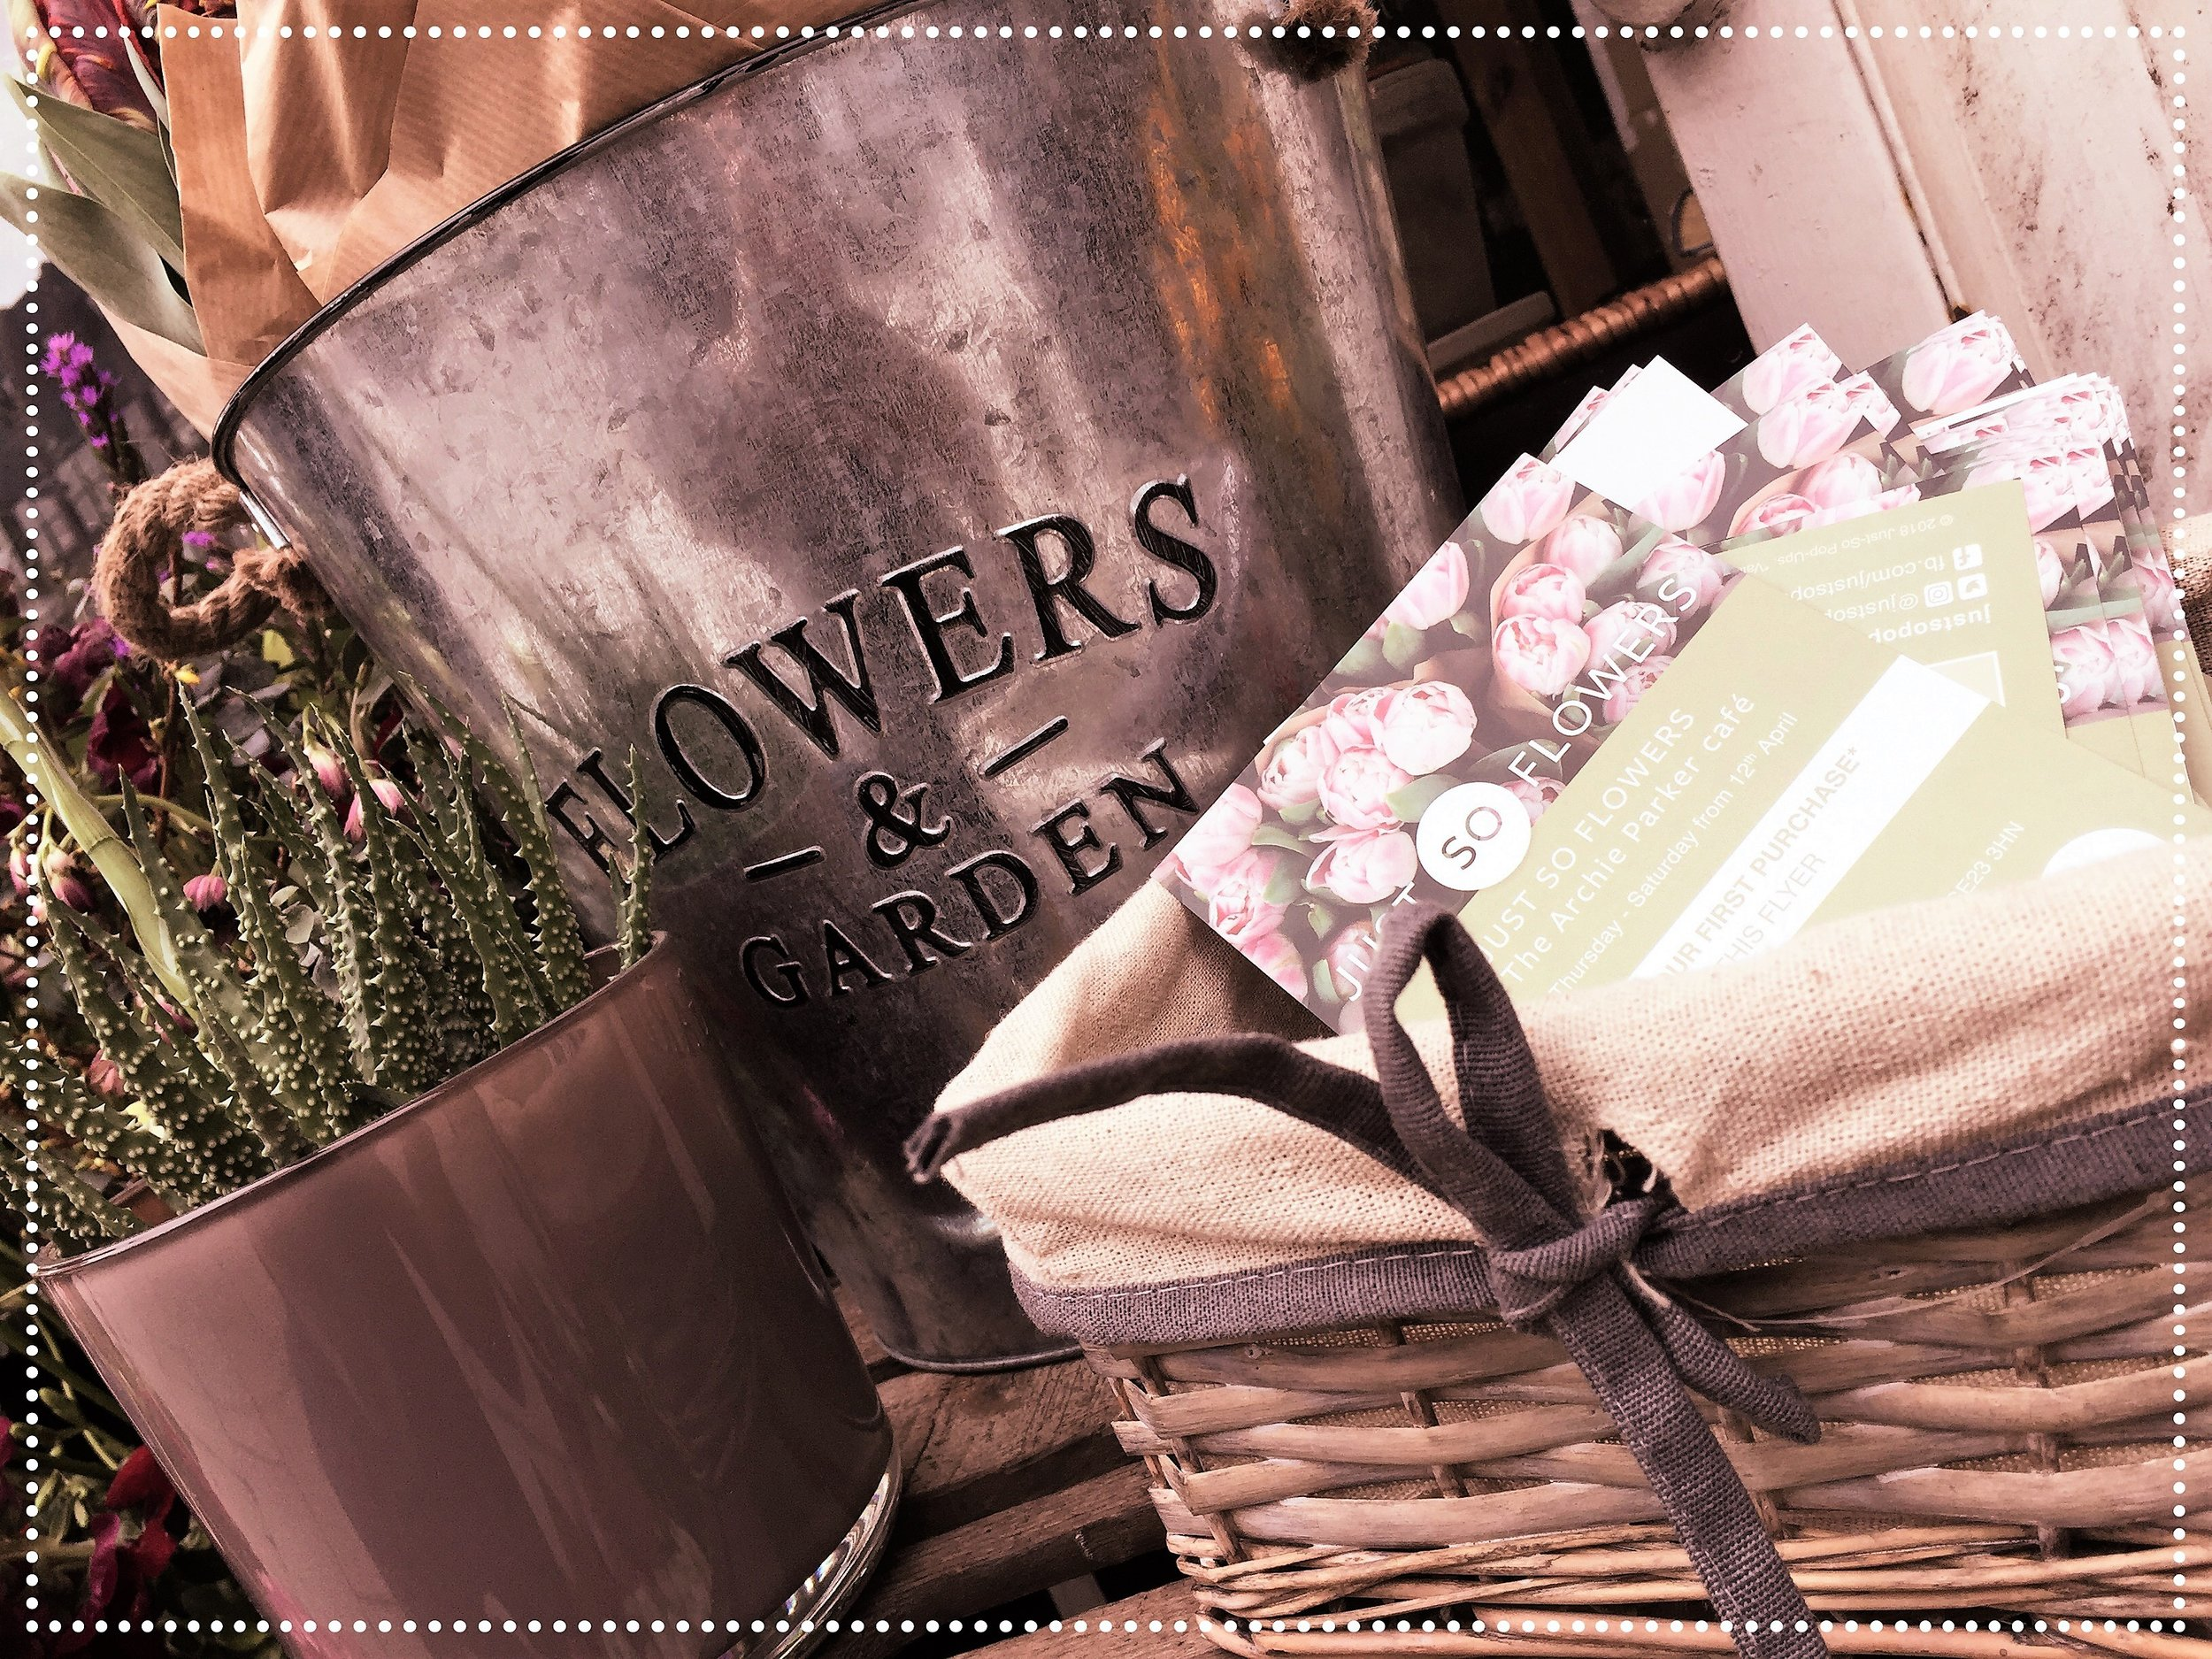 Just So Flowers Floristry pop-up in Forest Hill South East London 1.jpg